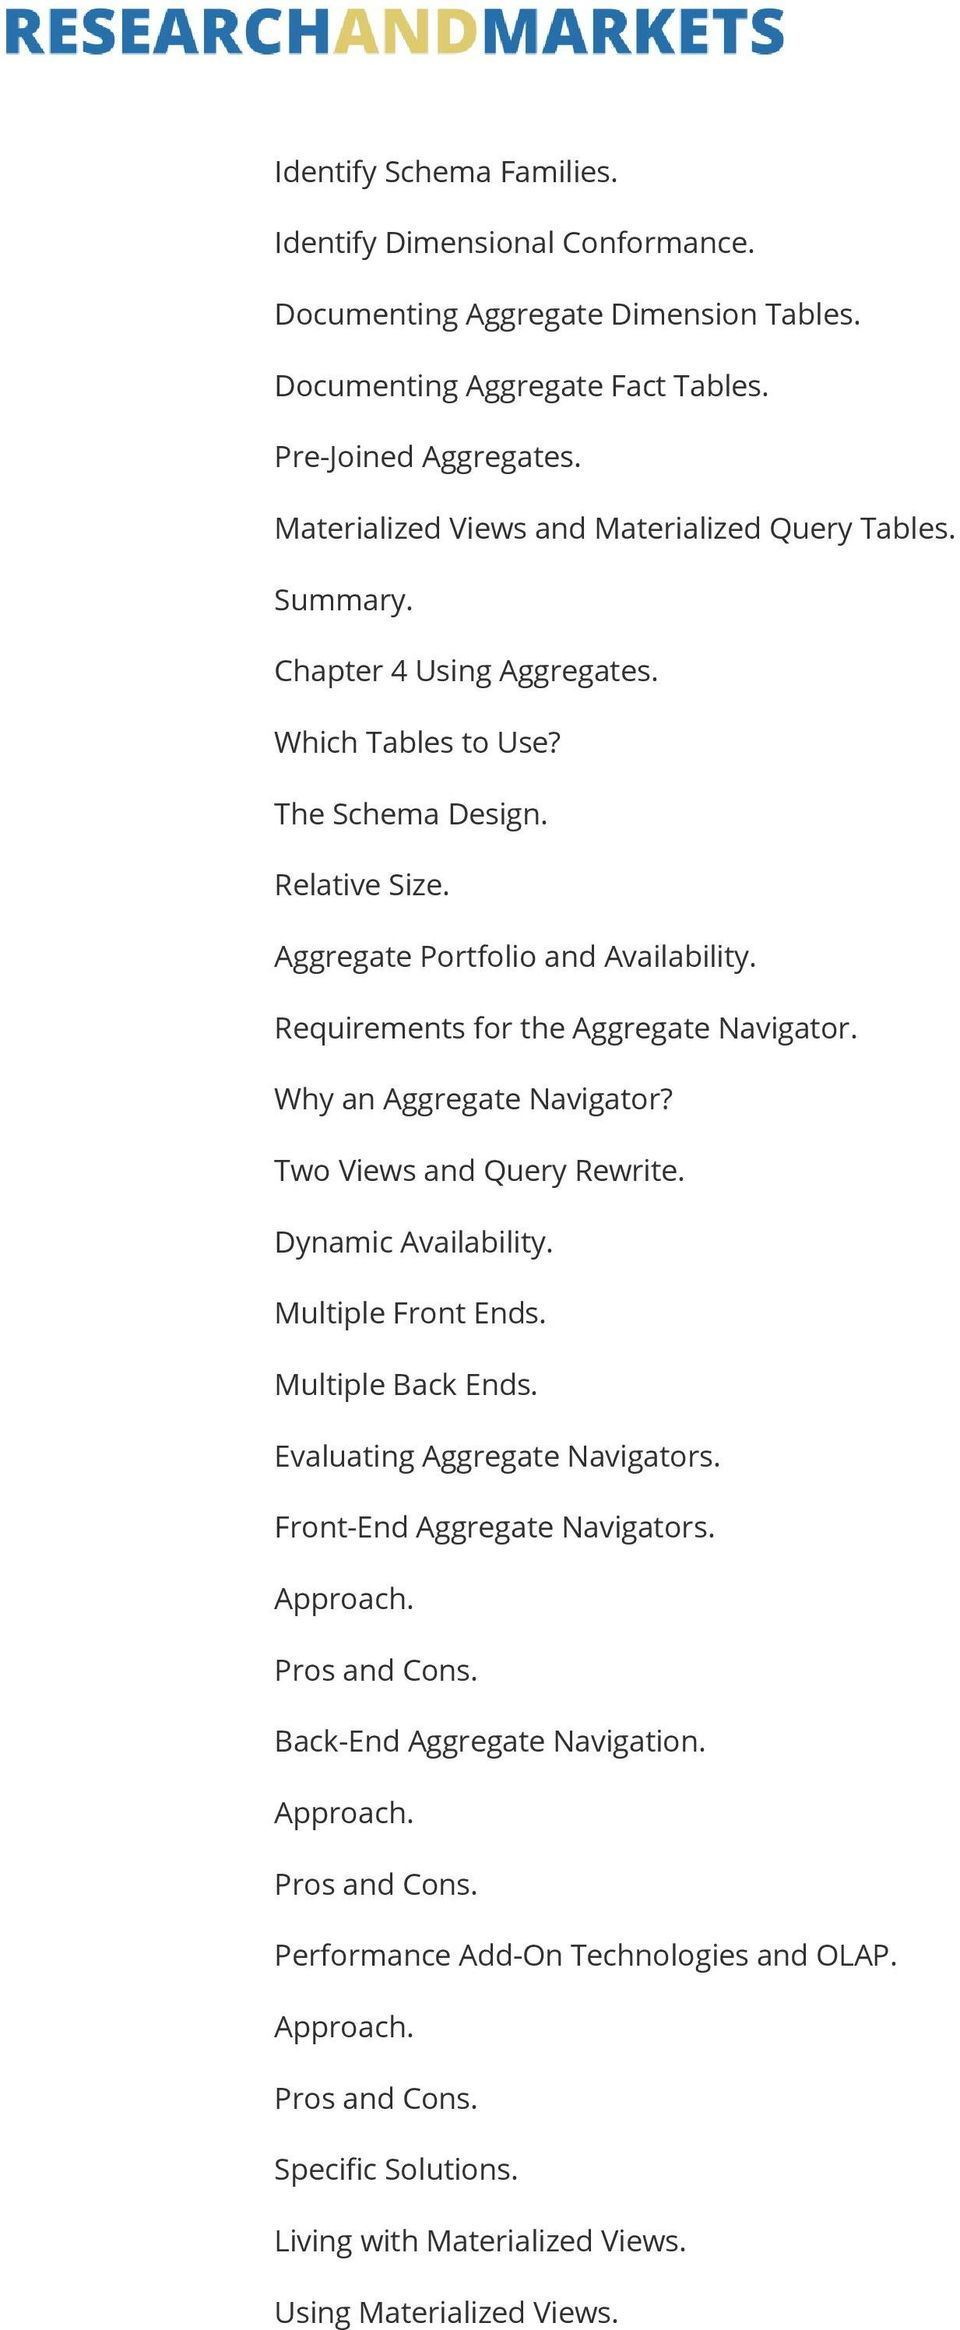 Requirements for the Aggregate Navigator. Why an Aggregate Navigator? Two Views and Query Rewrite. Dynamic Availability. Multiple Front Ends. Multiple Back Ends. Evaluating Aggregate Navigators.